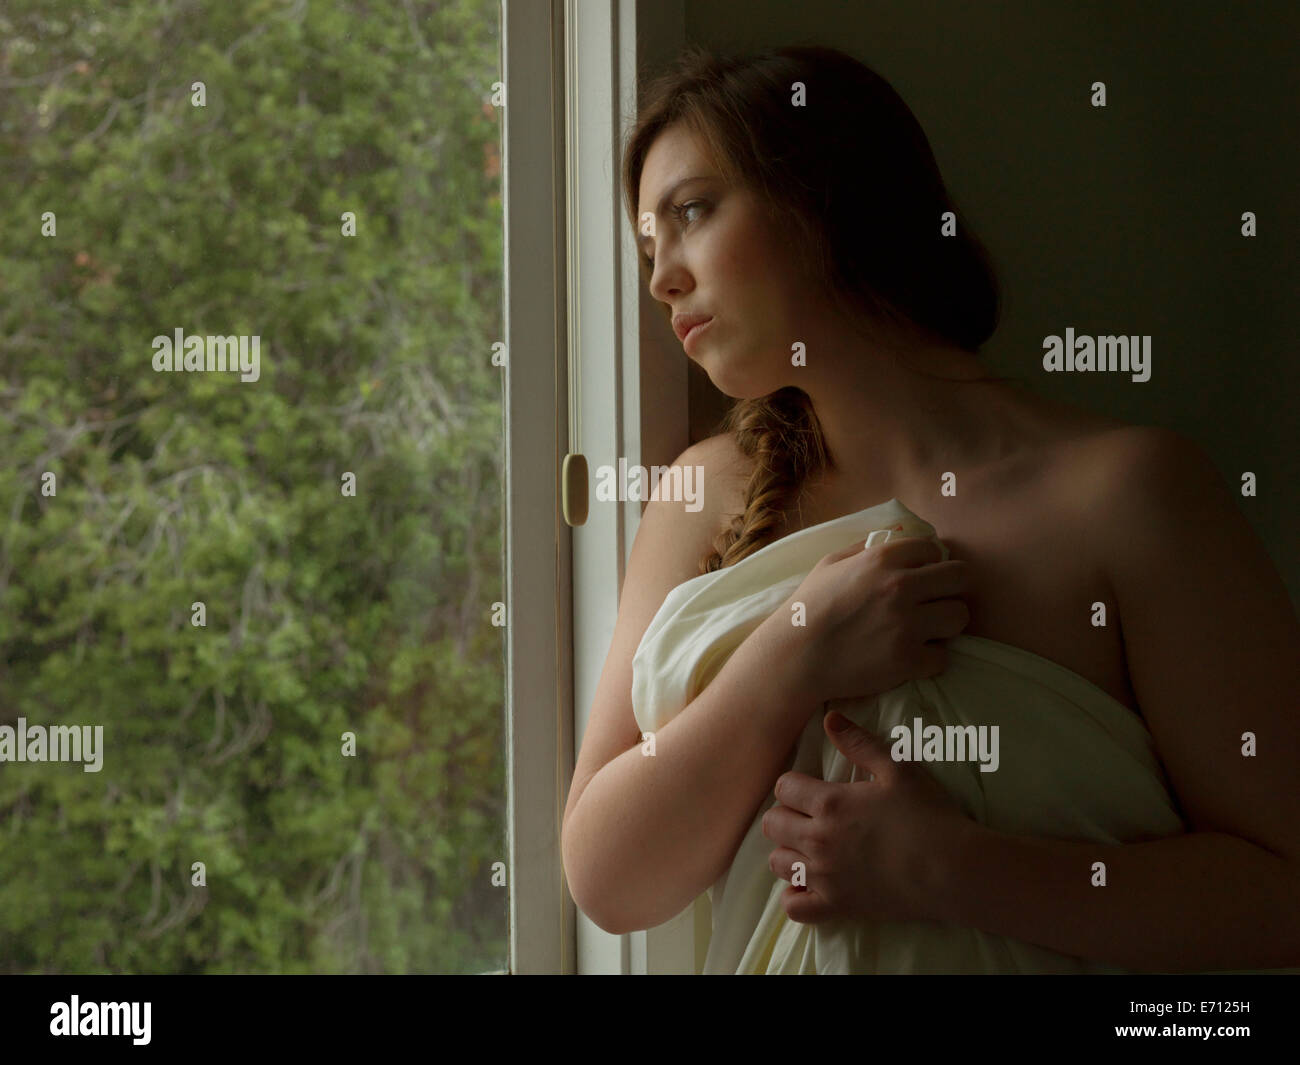 Sad young woman gazing out of hotel bedroom window whilst wrapped in sheet Stock Photo